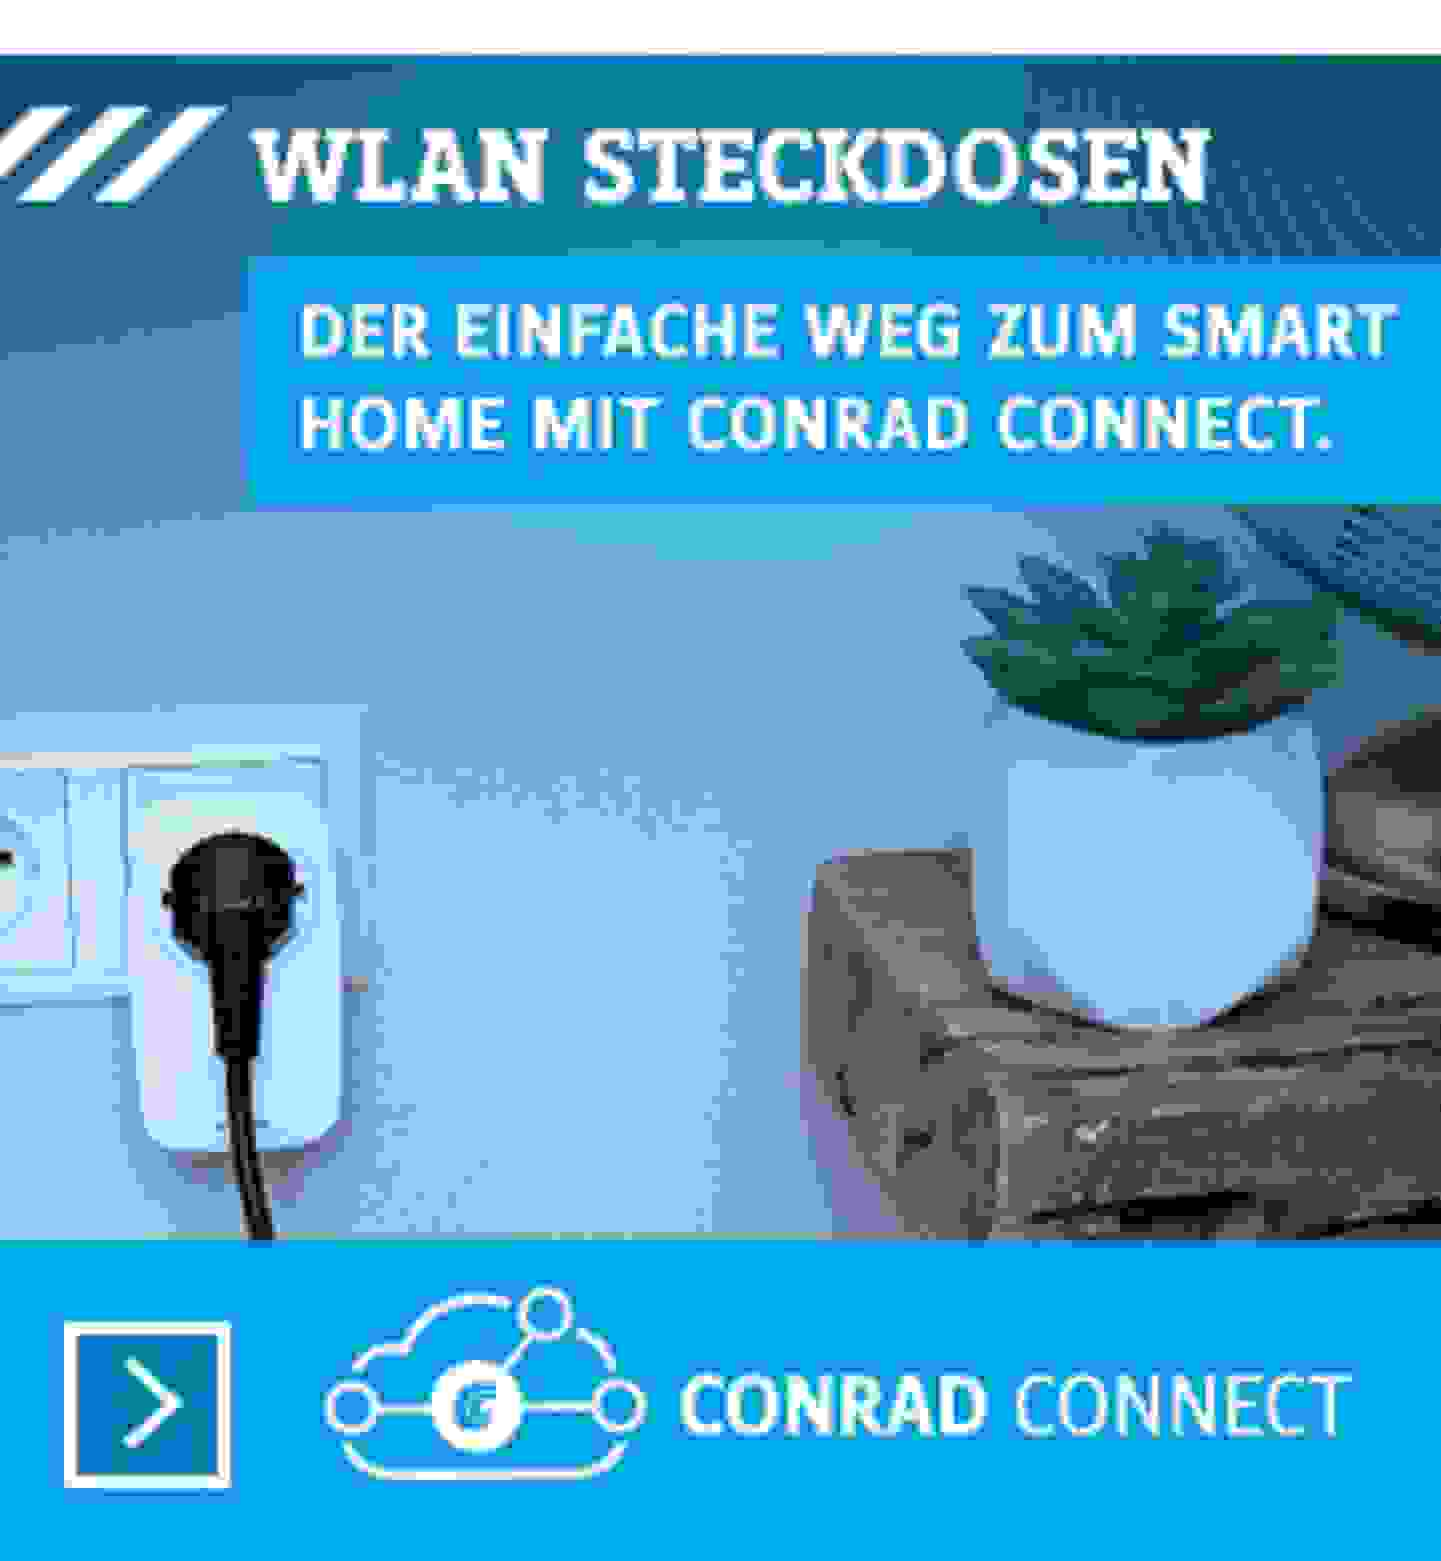 Conrad Connect: WLAN-Steckdosen